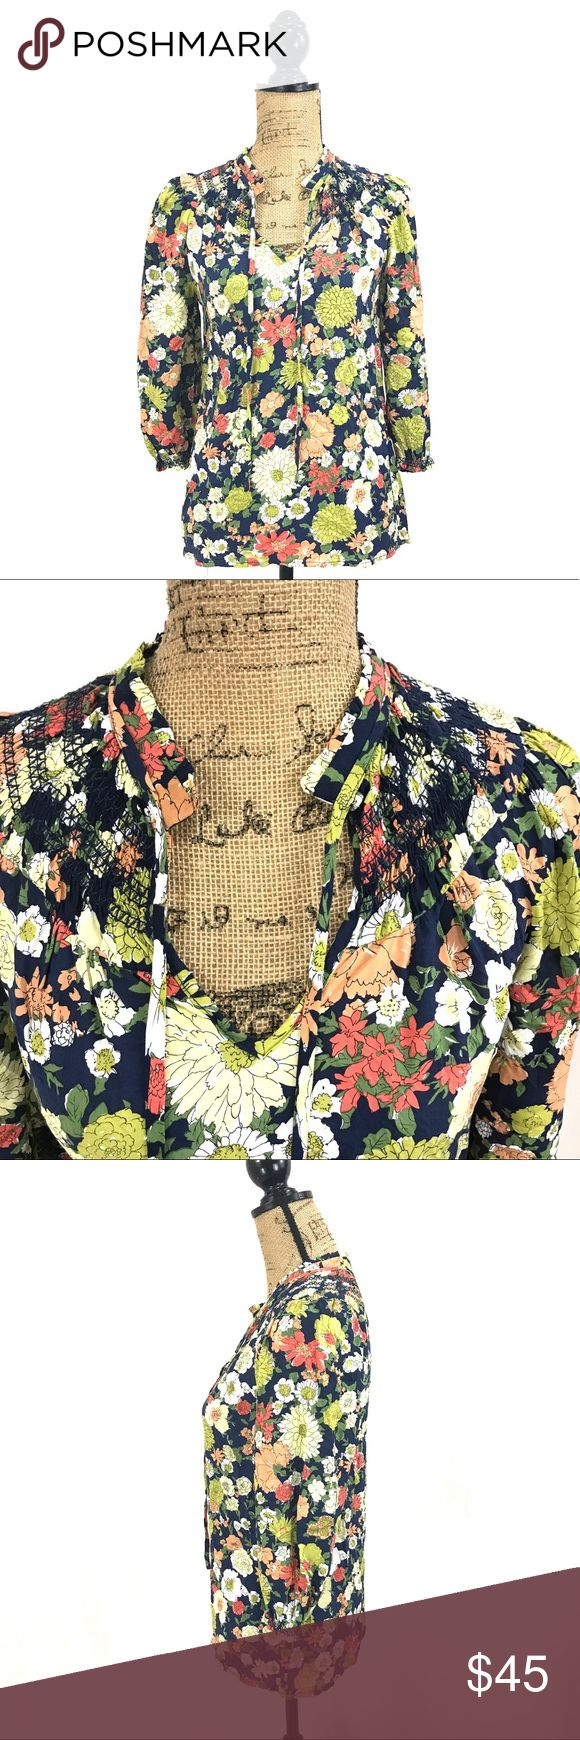 Anthro odille floral blouse NWOT - new without tags. Size 0. Anthro-odille materials pictured. Measurements are taken with the garment laying flat, unstretched, in inches not doubled and are approximate. Bust-18 length-25 sleeve length-18 Anthropologie Tops